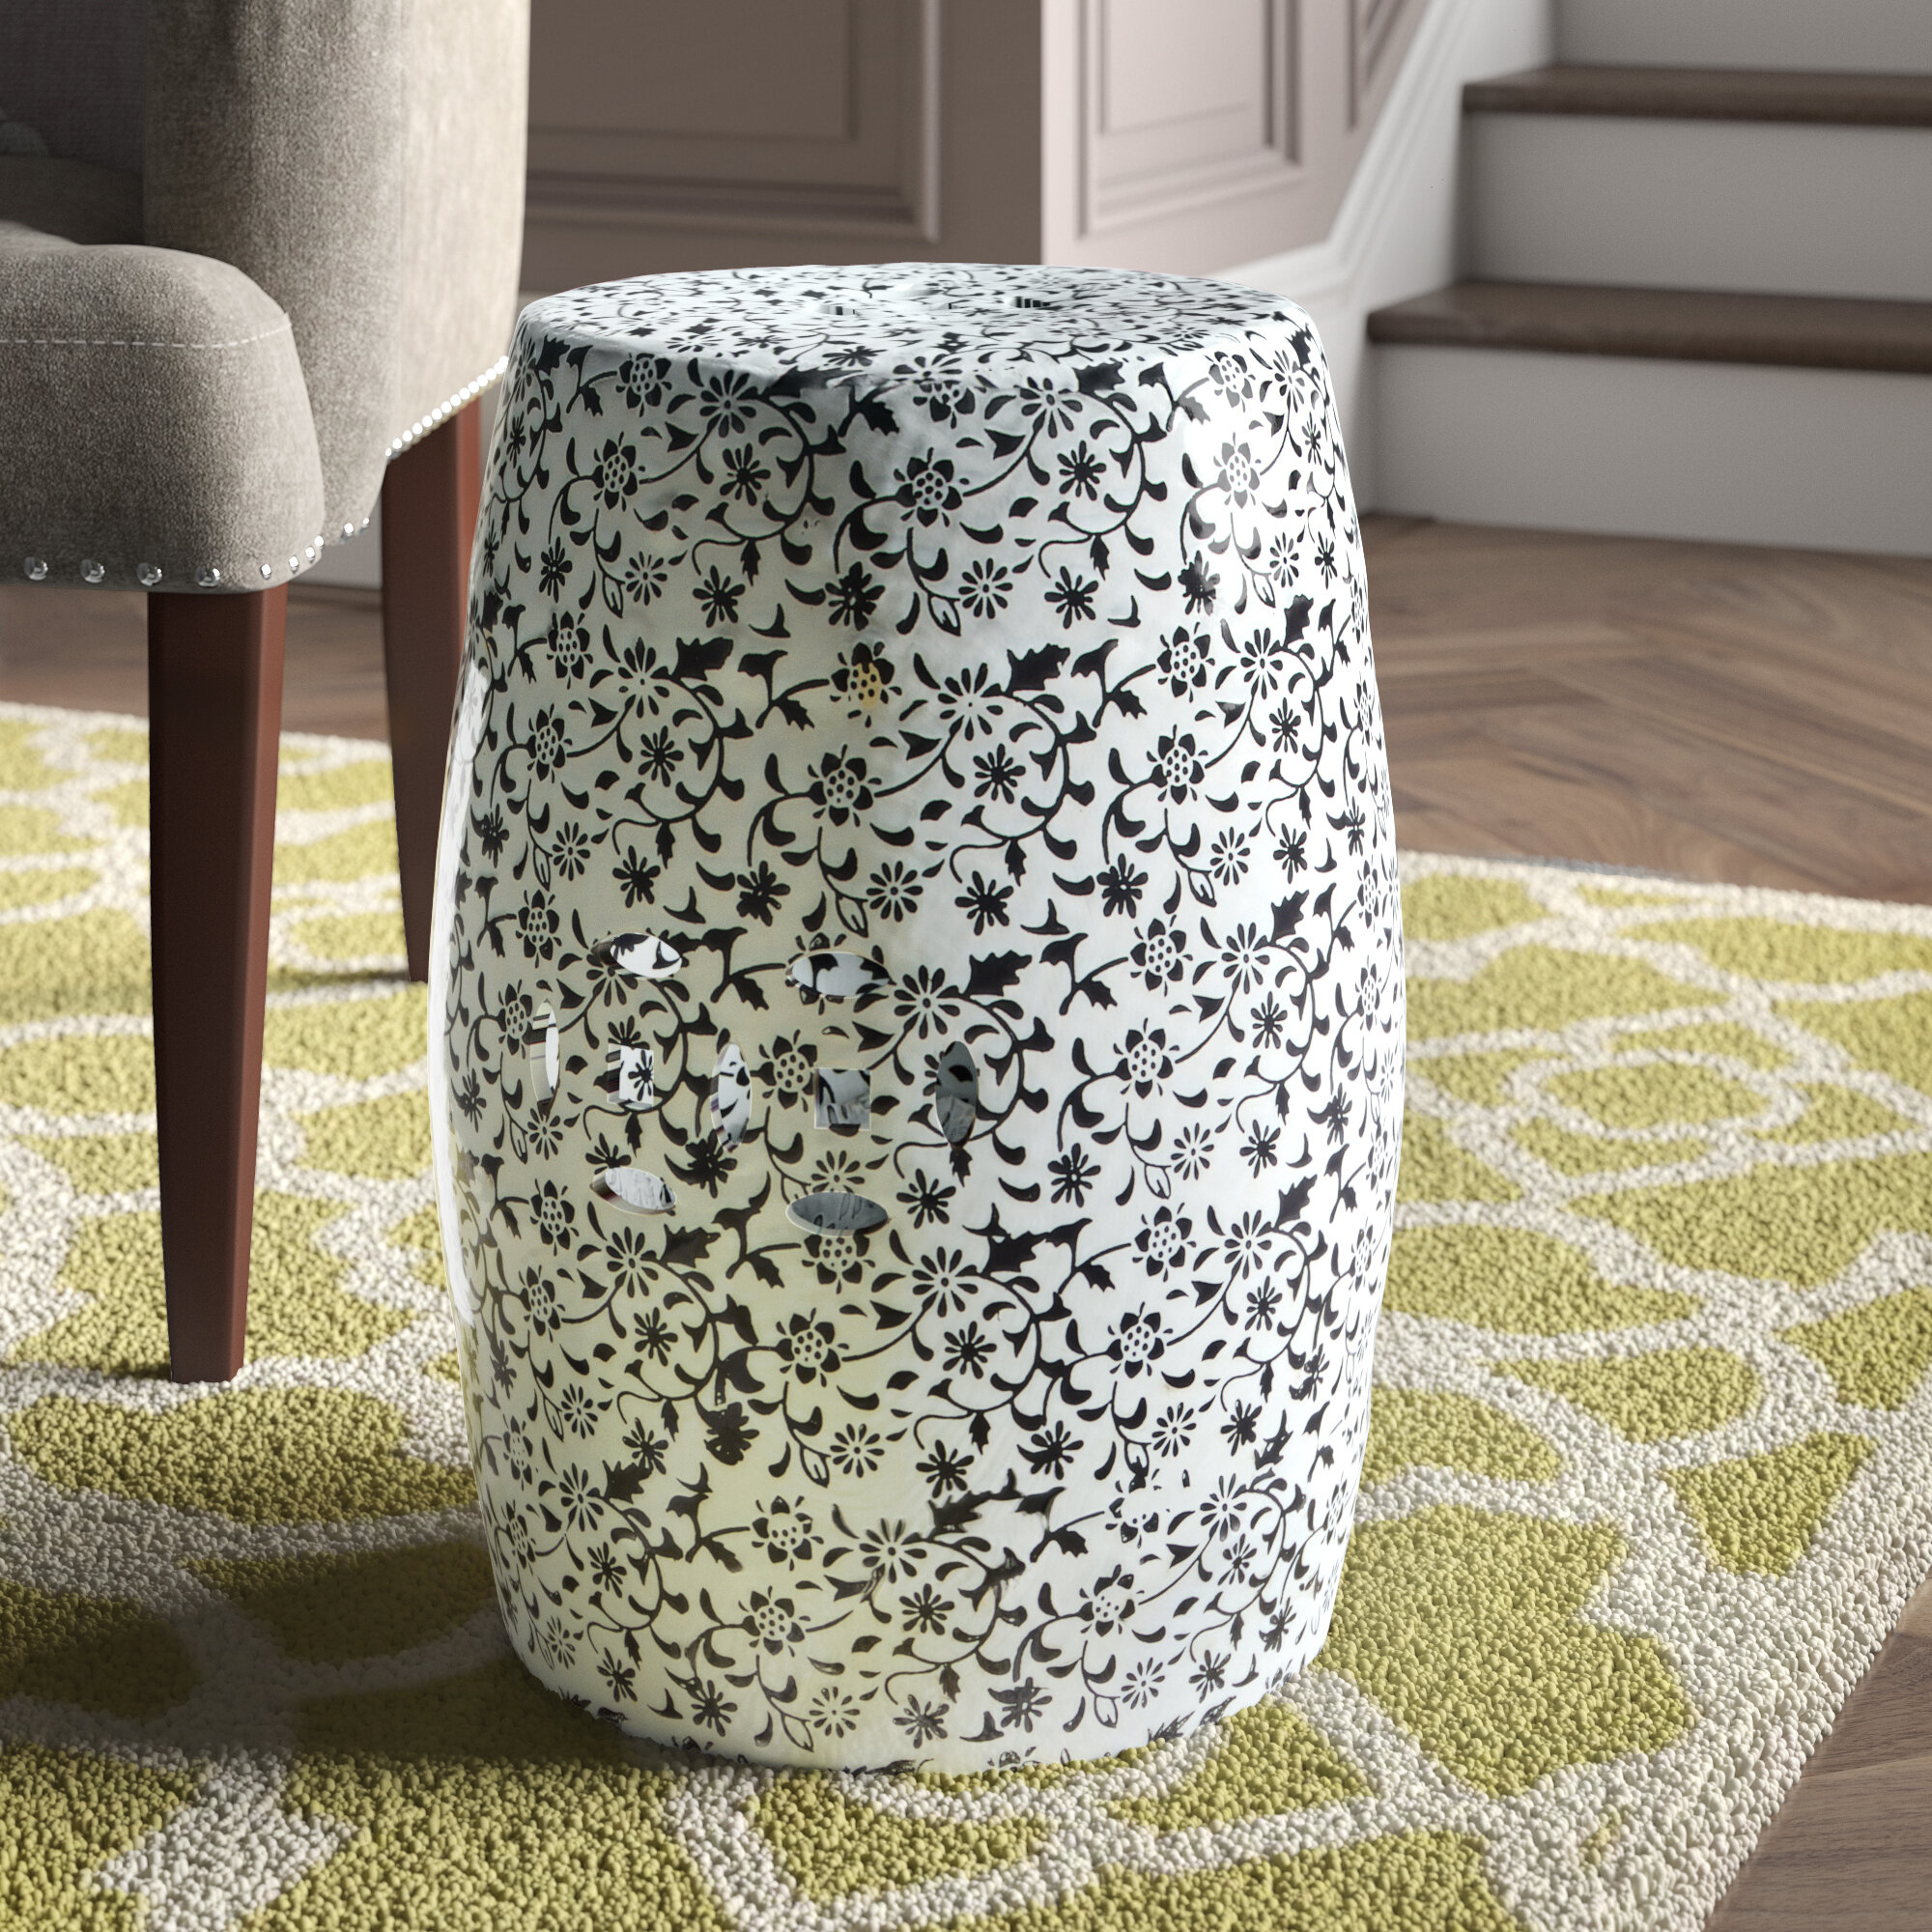 Floral Accent Stools You'Ll Love In 2020 | Wayfair Within Glendale Heights Birds And Butterflies Garden Stools (View 14 of 25)